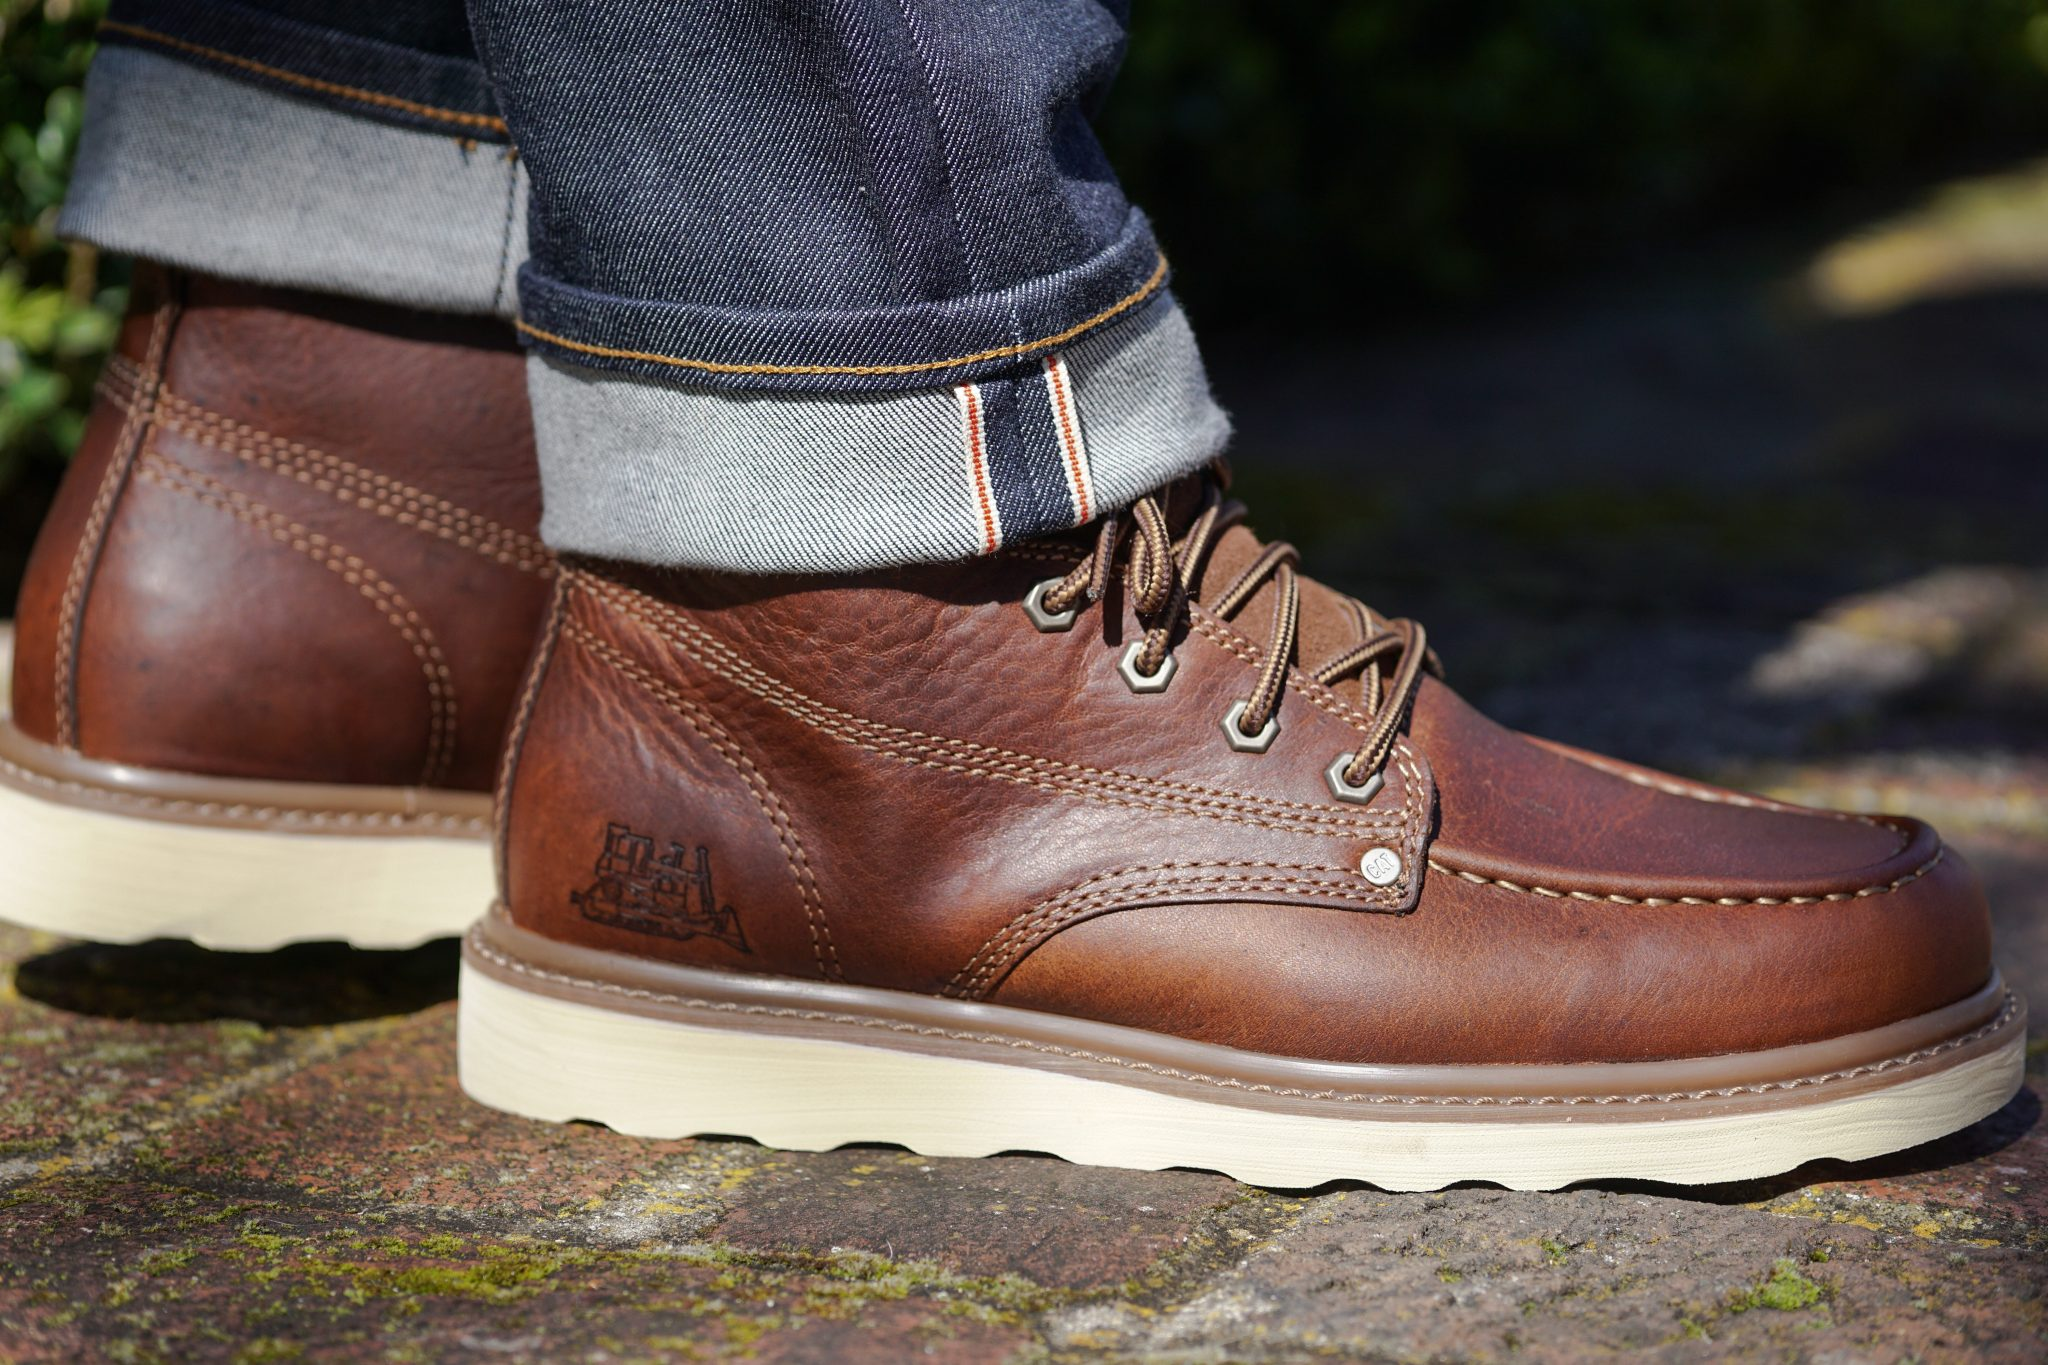 dapper-advisor-cat-footwear-glenrock-mid-chukka-giveaway-1